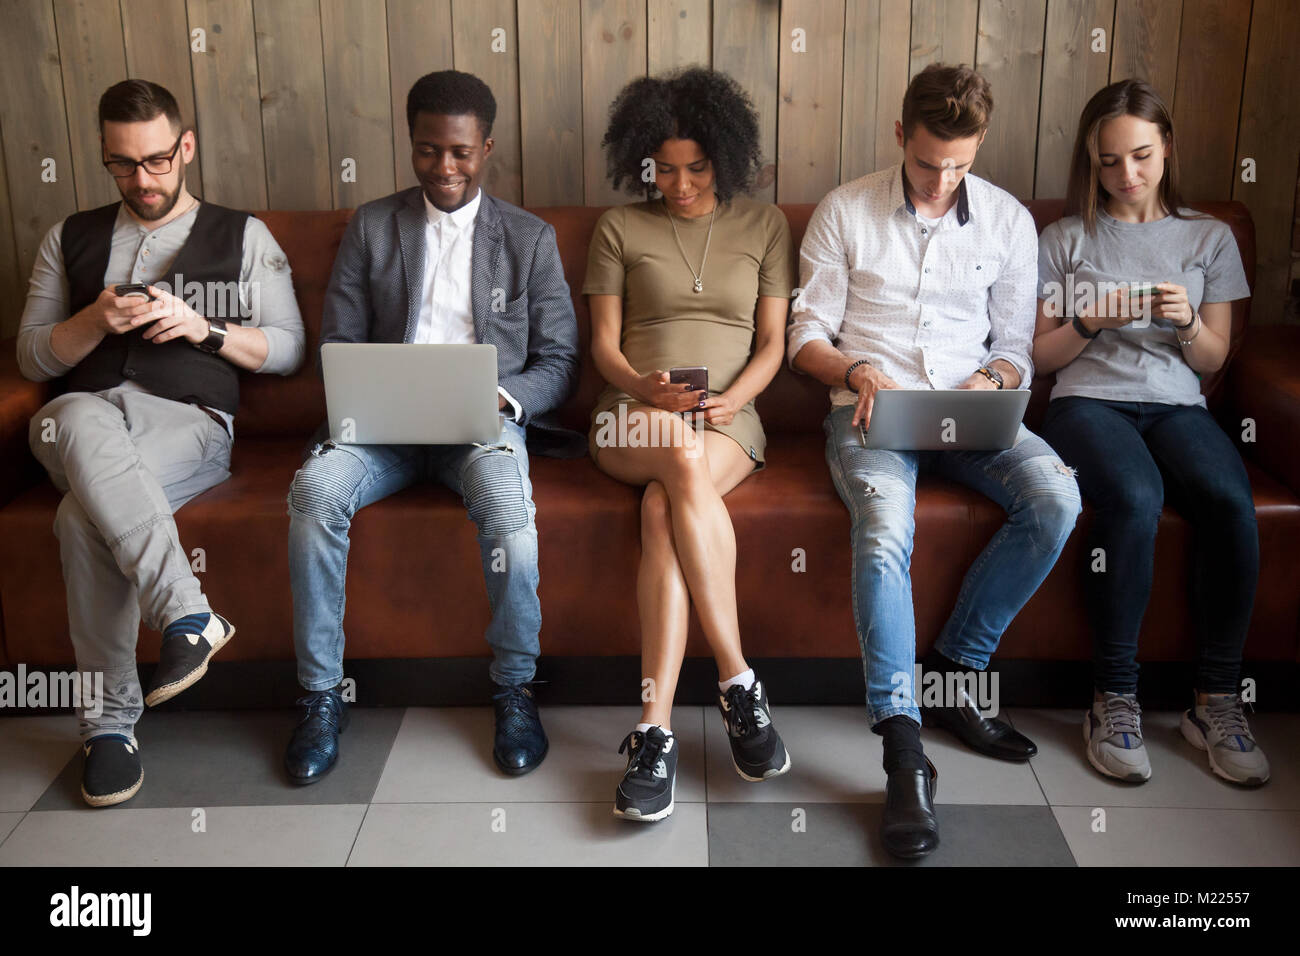 Multicultural young people using laptops and smartphones sitting - Stock Image